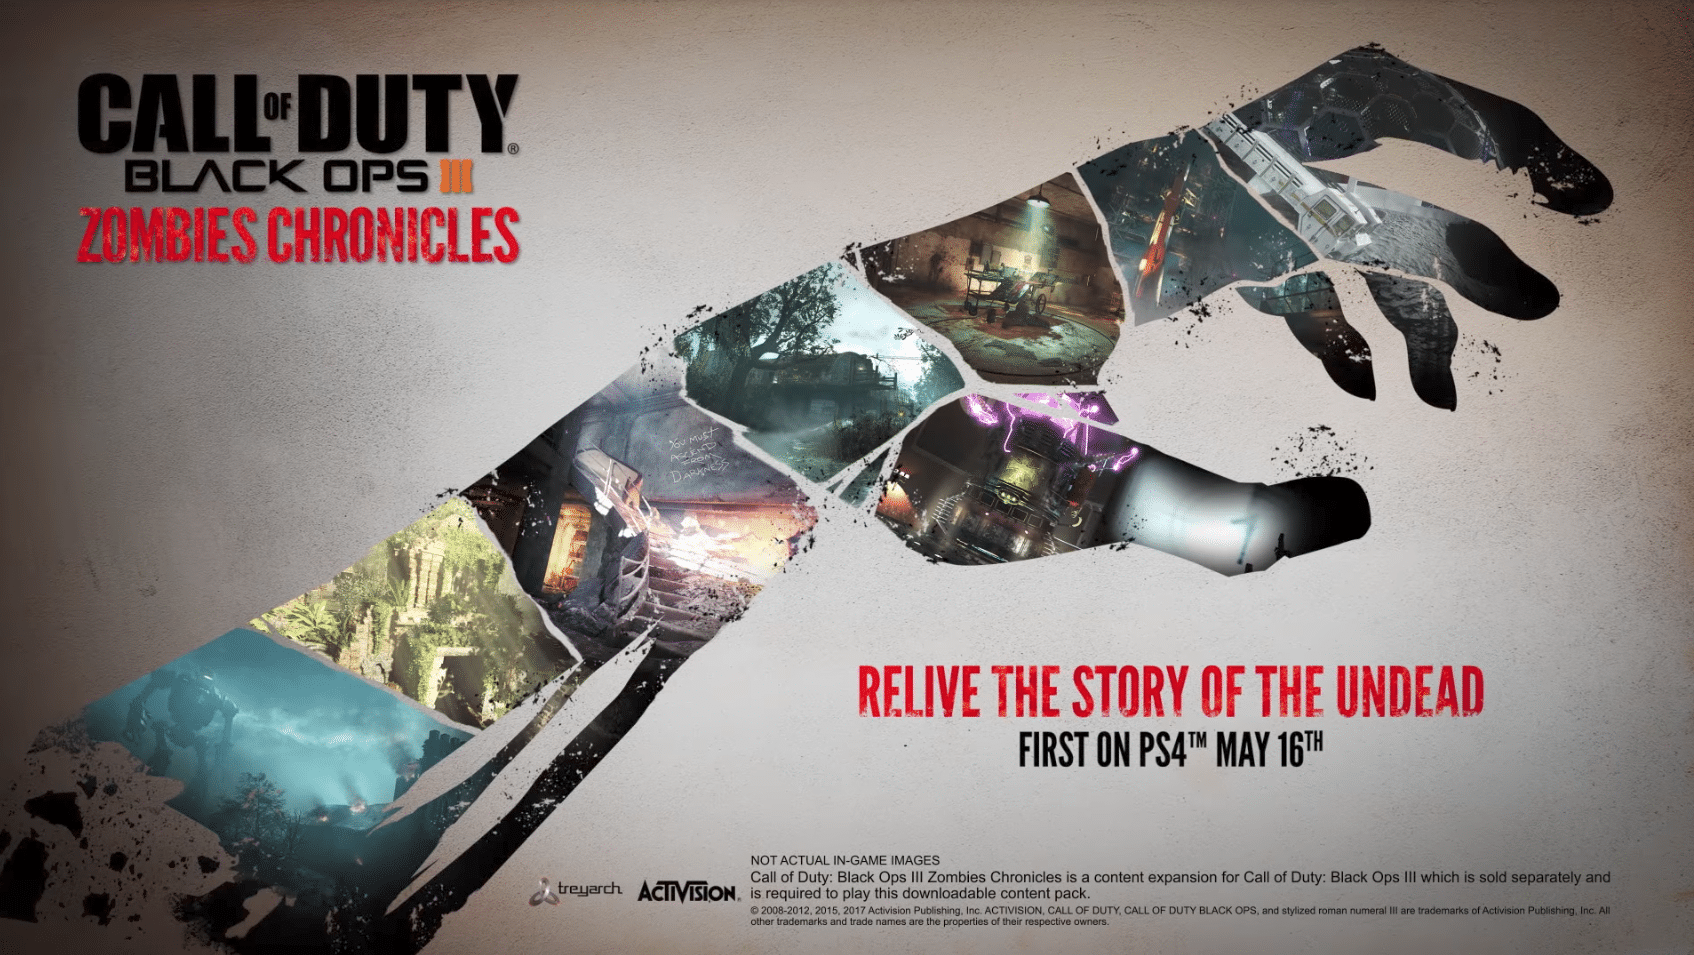 Call Of Duty Black Ops III Zombies Chronicles Story